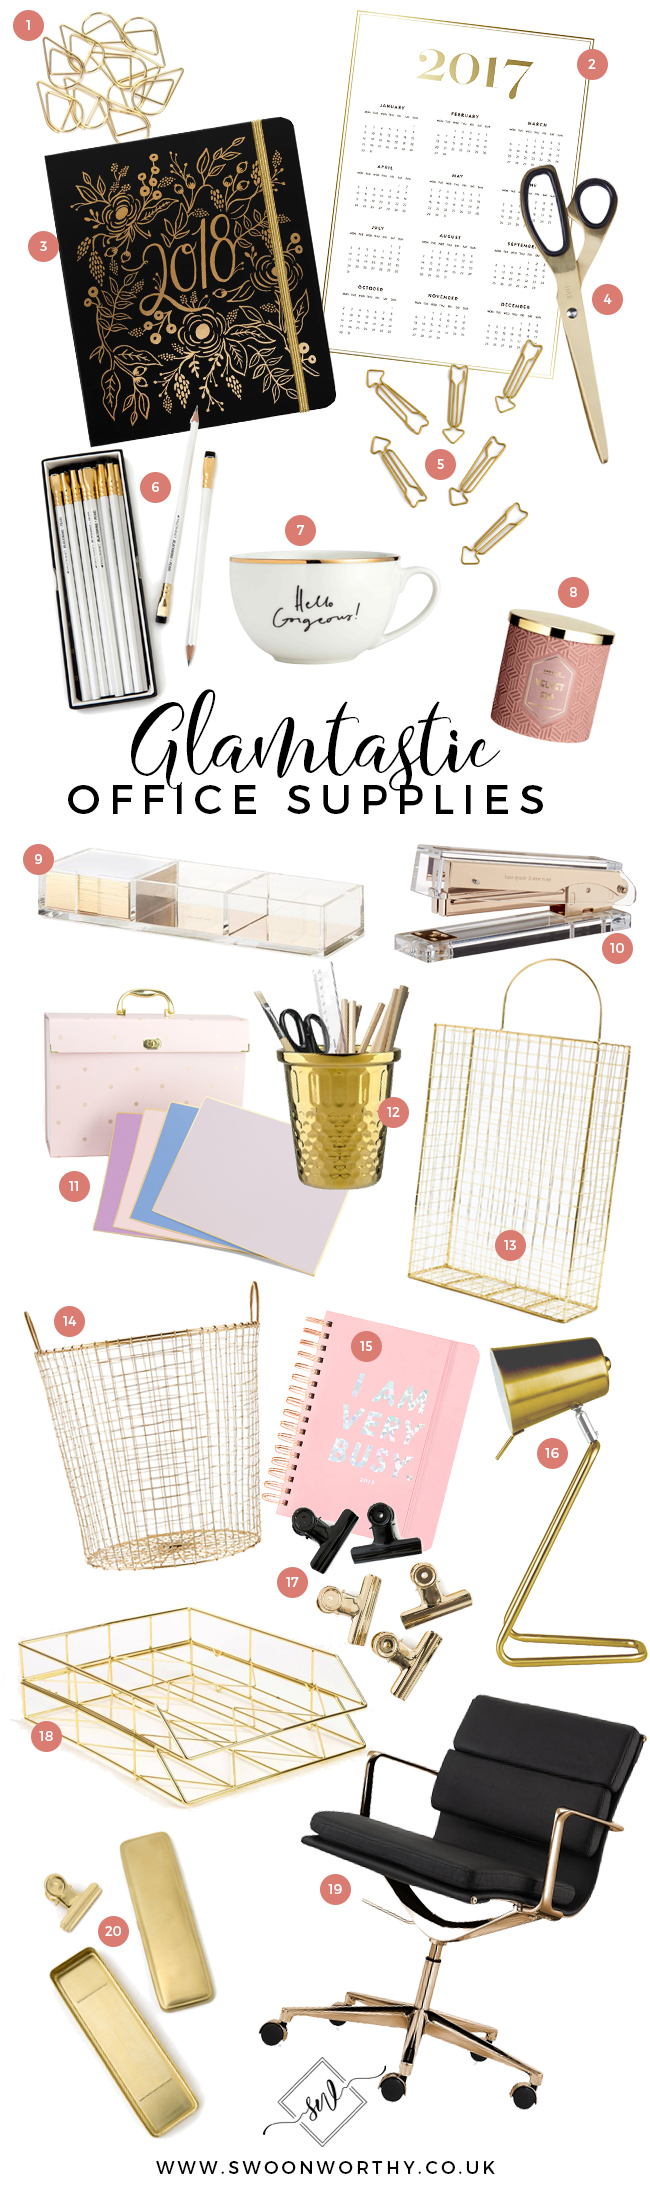 Gold glam office supplies moodboard buying guide edit